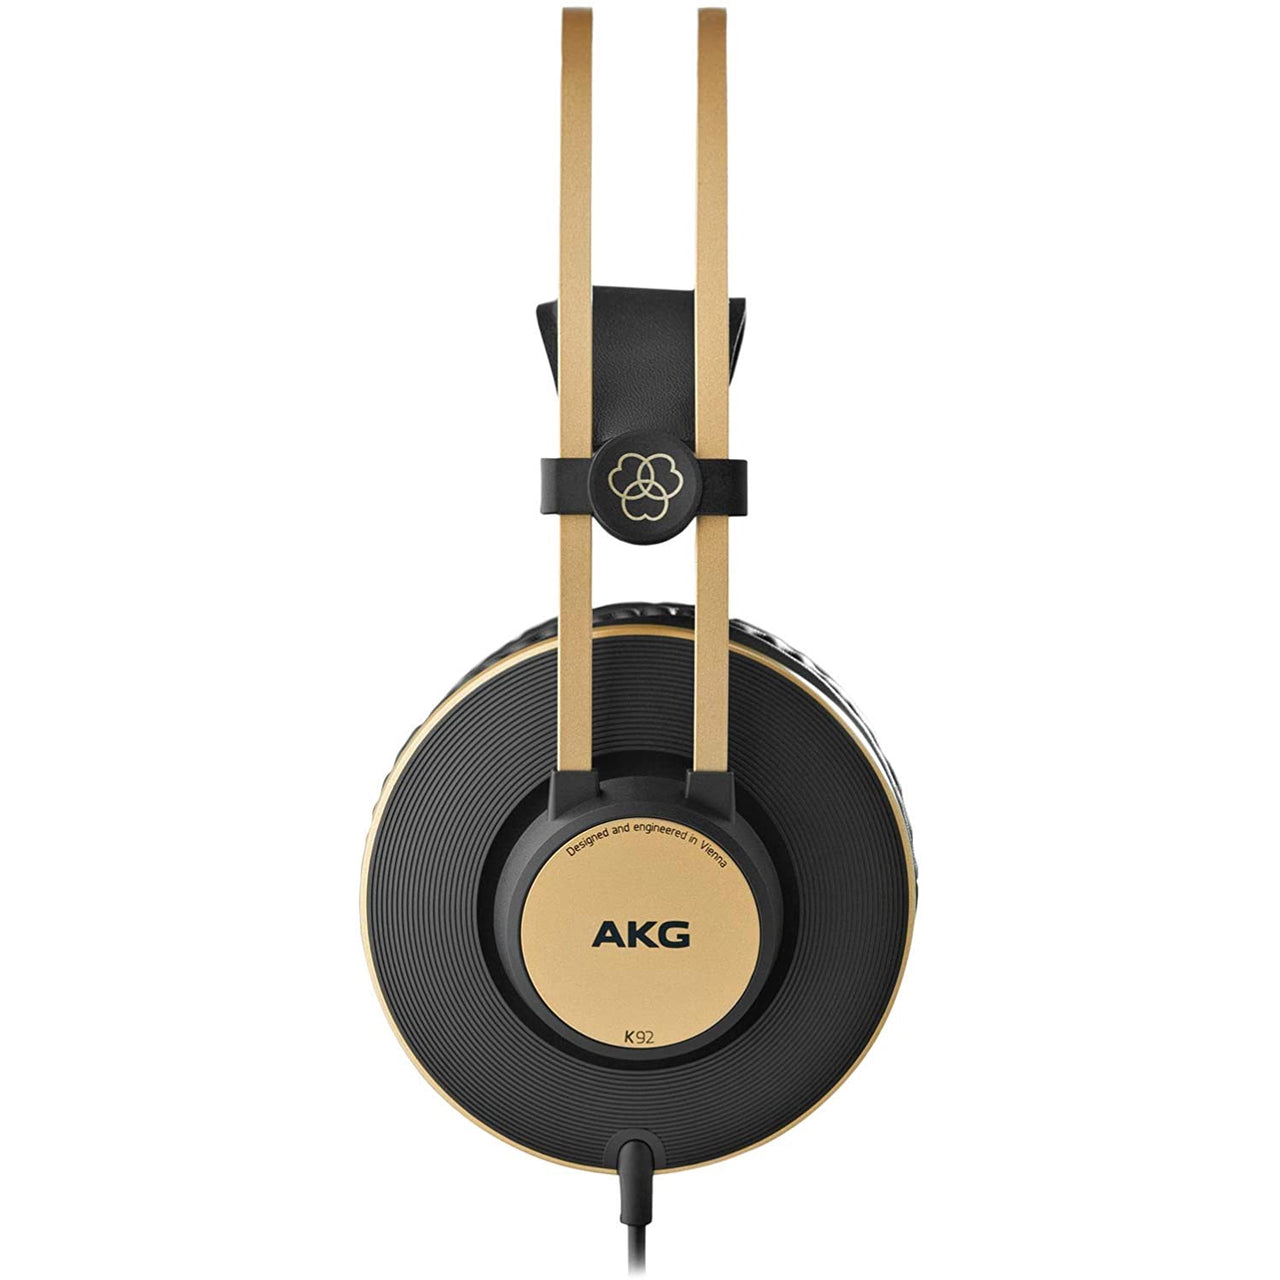 AKG K92 Pro Closed-Back Headphones